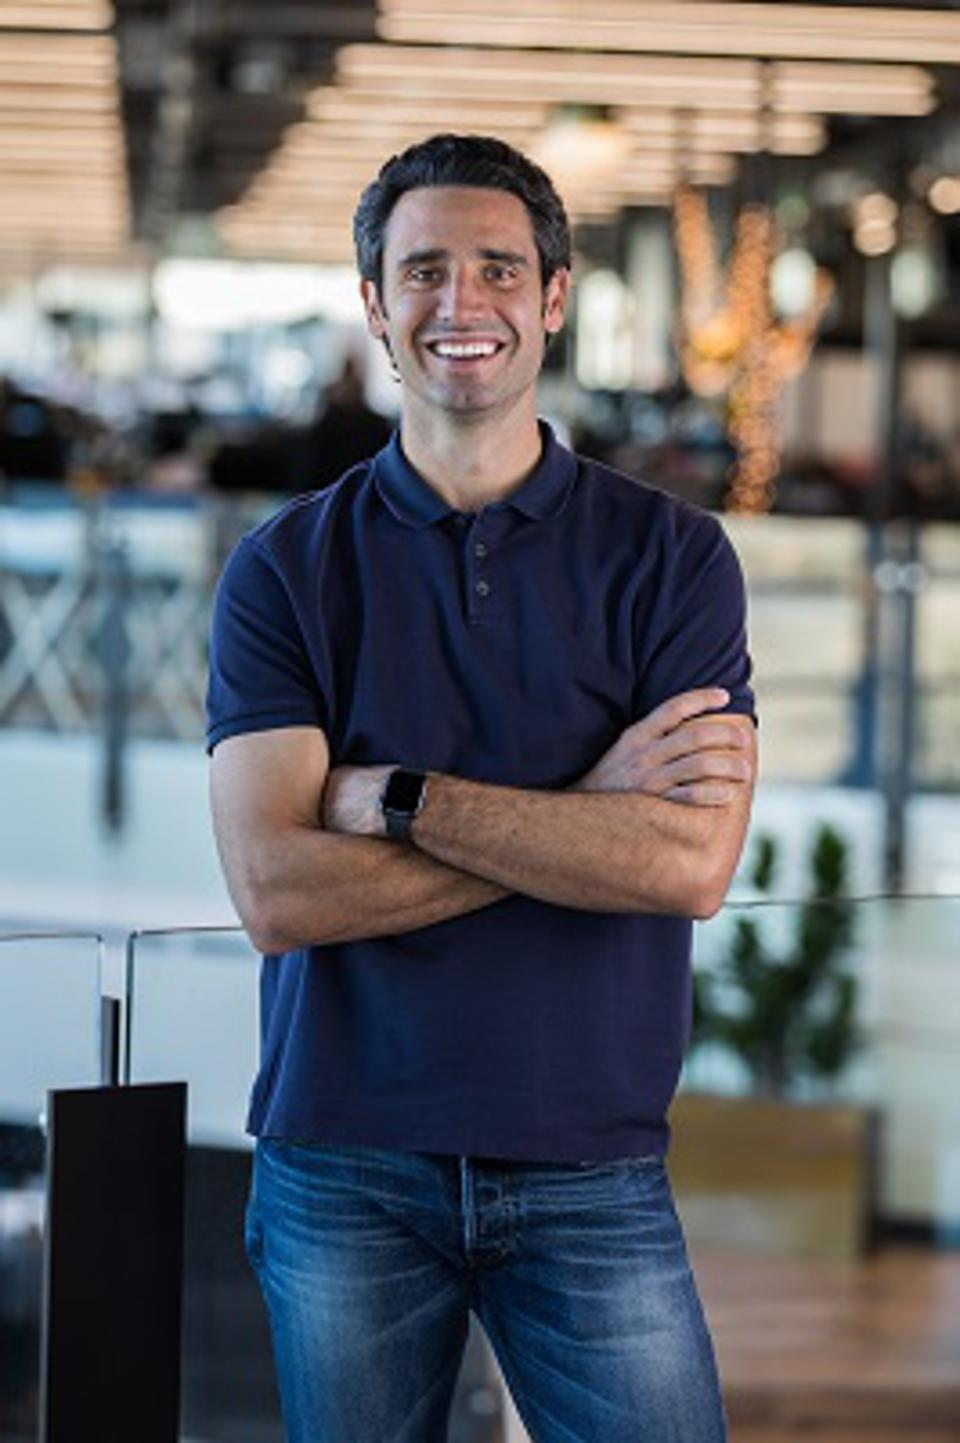 Carvana 2021 Q1 sales were up 28% over Q4 2020.